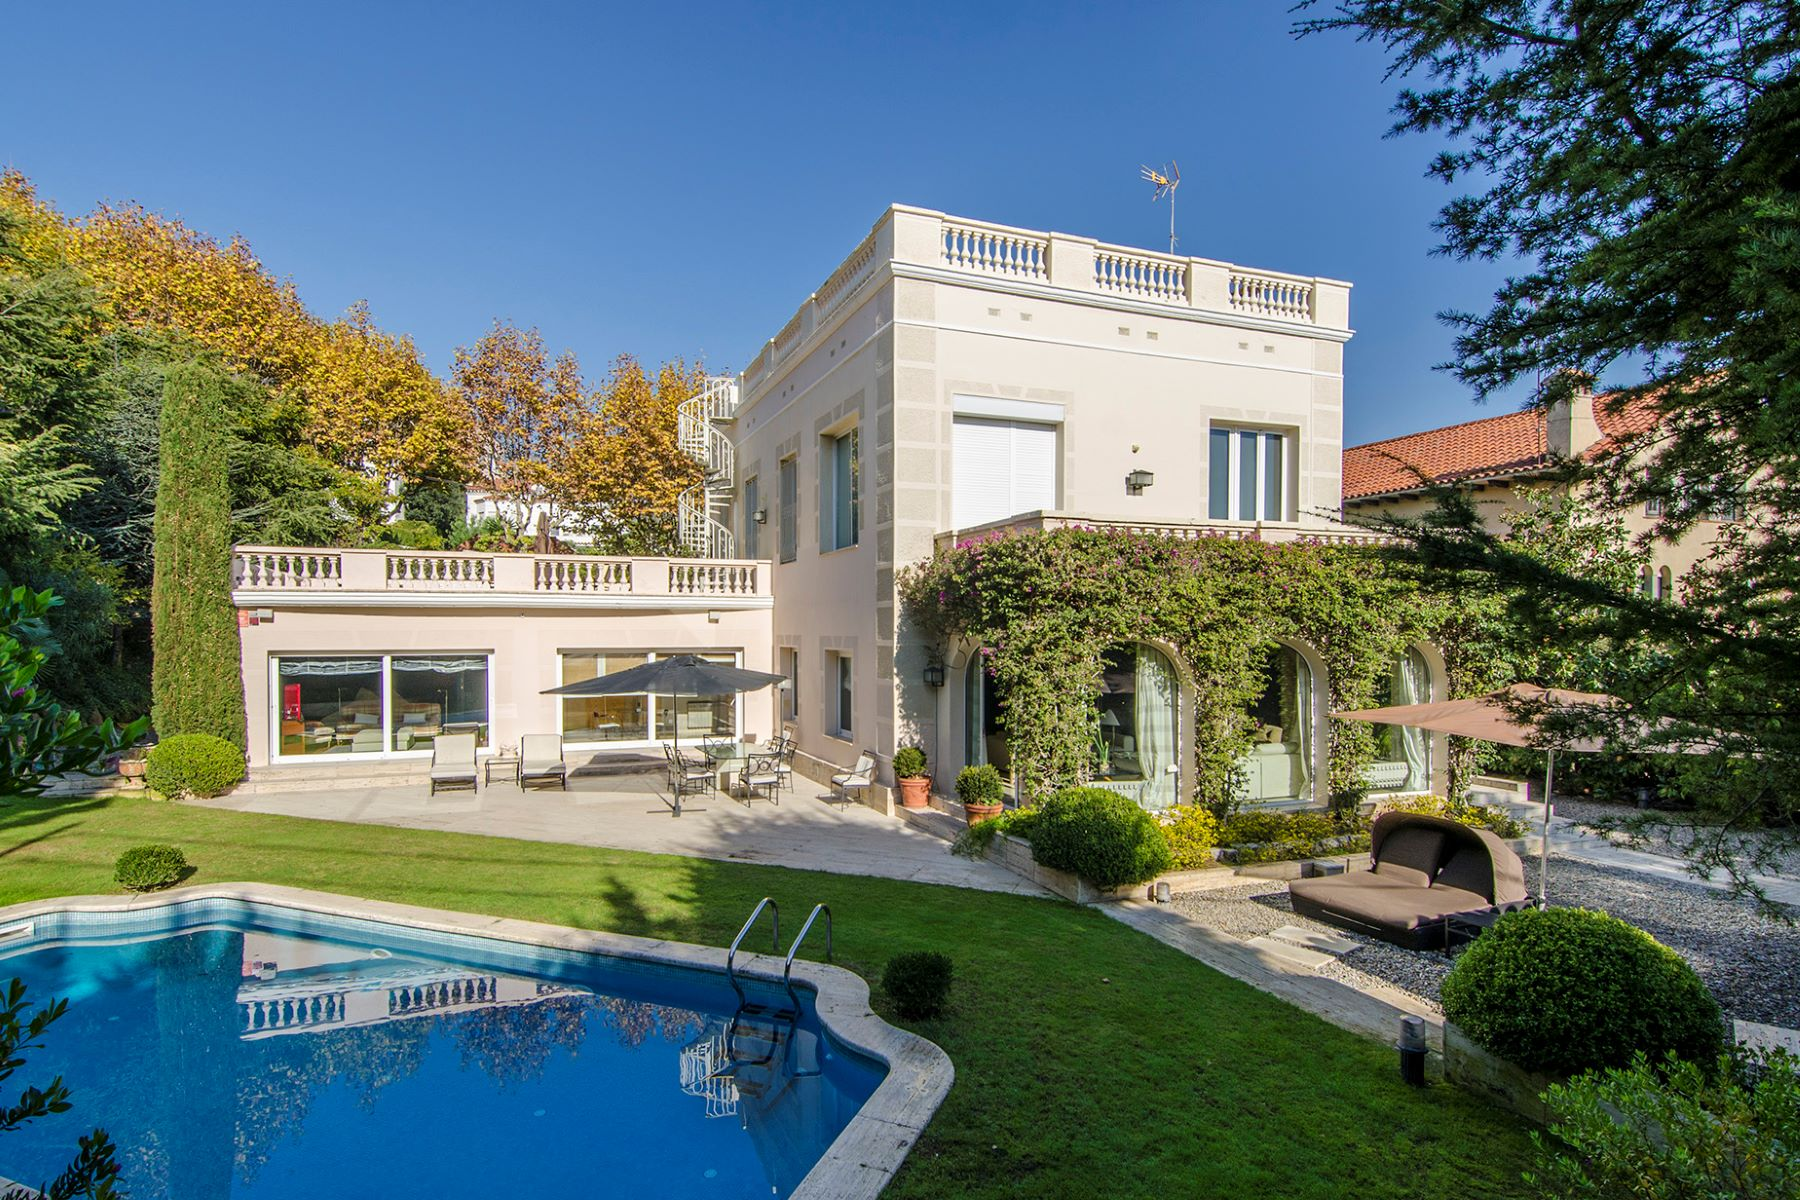 Single Family Home for Sale at A Neoclassical Jewel a Short Distance from Barcelona Other Cities Barcelona North Coast, Barcelona, 08328 Spain